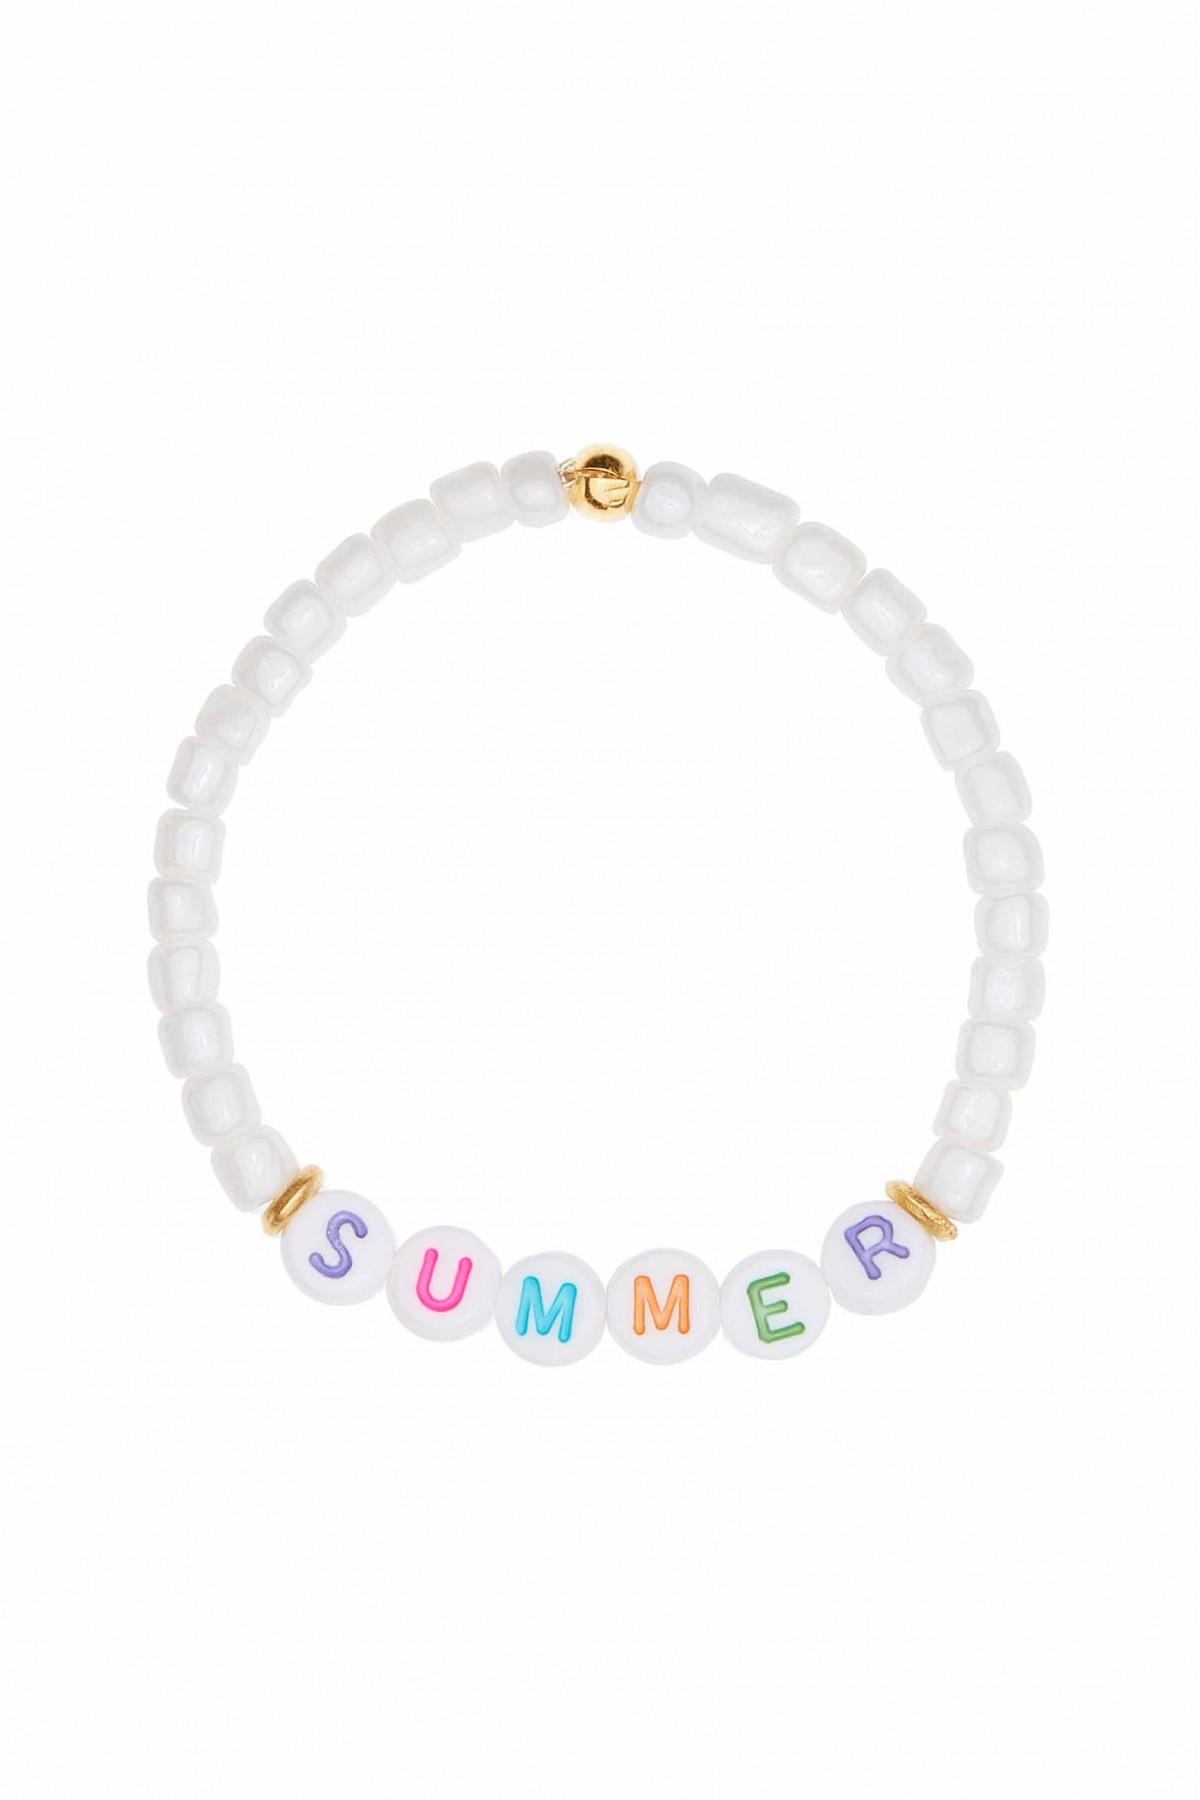 Mum & Daughter Summer Bracelet